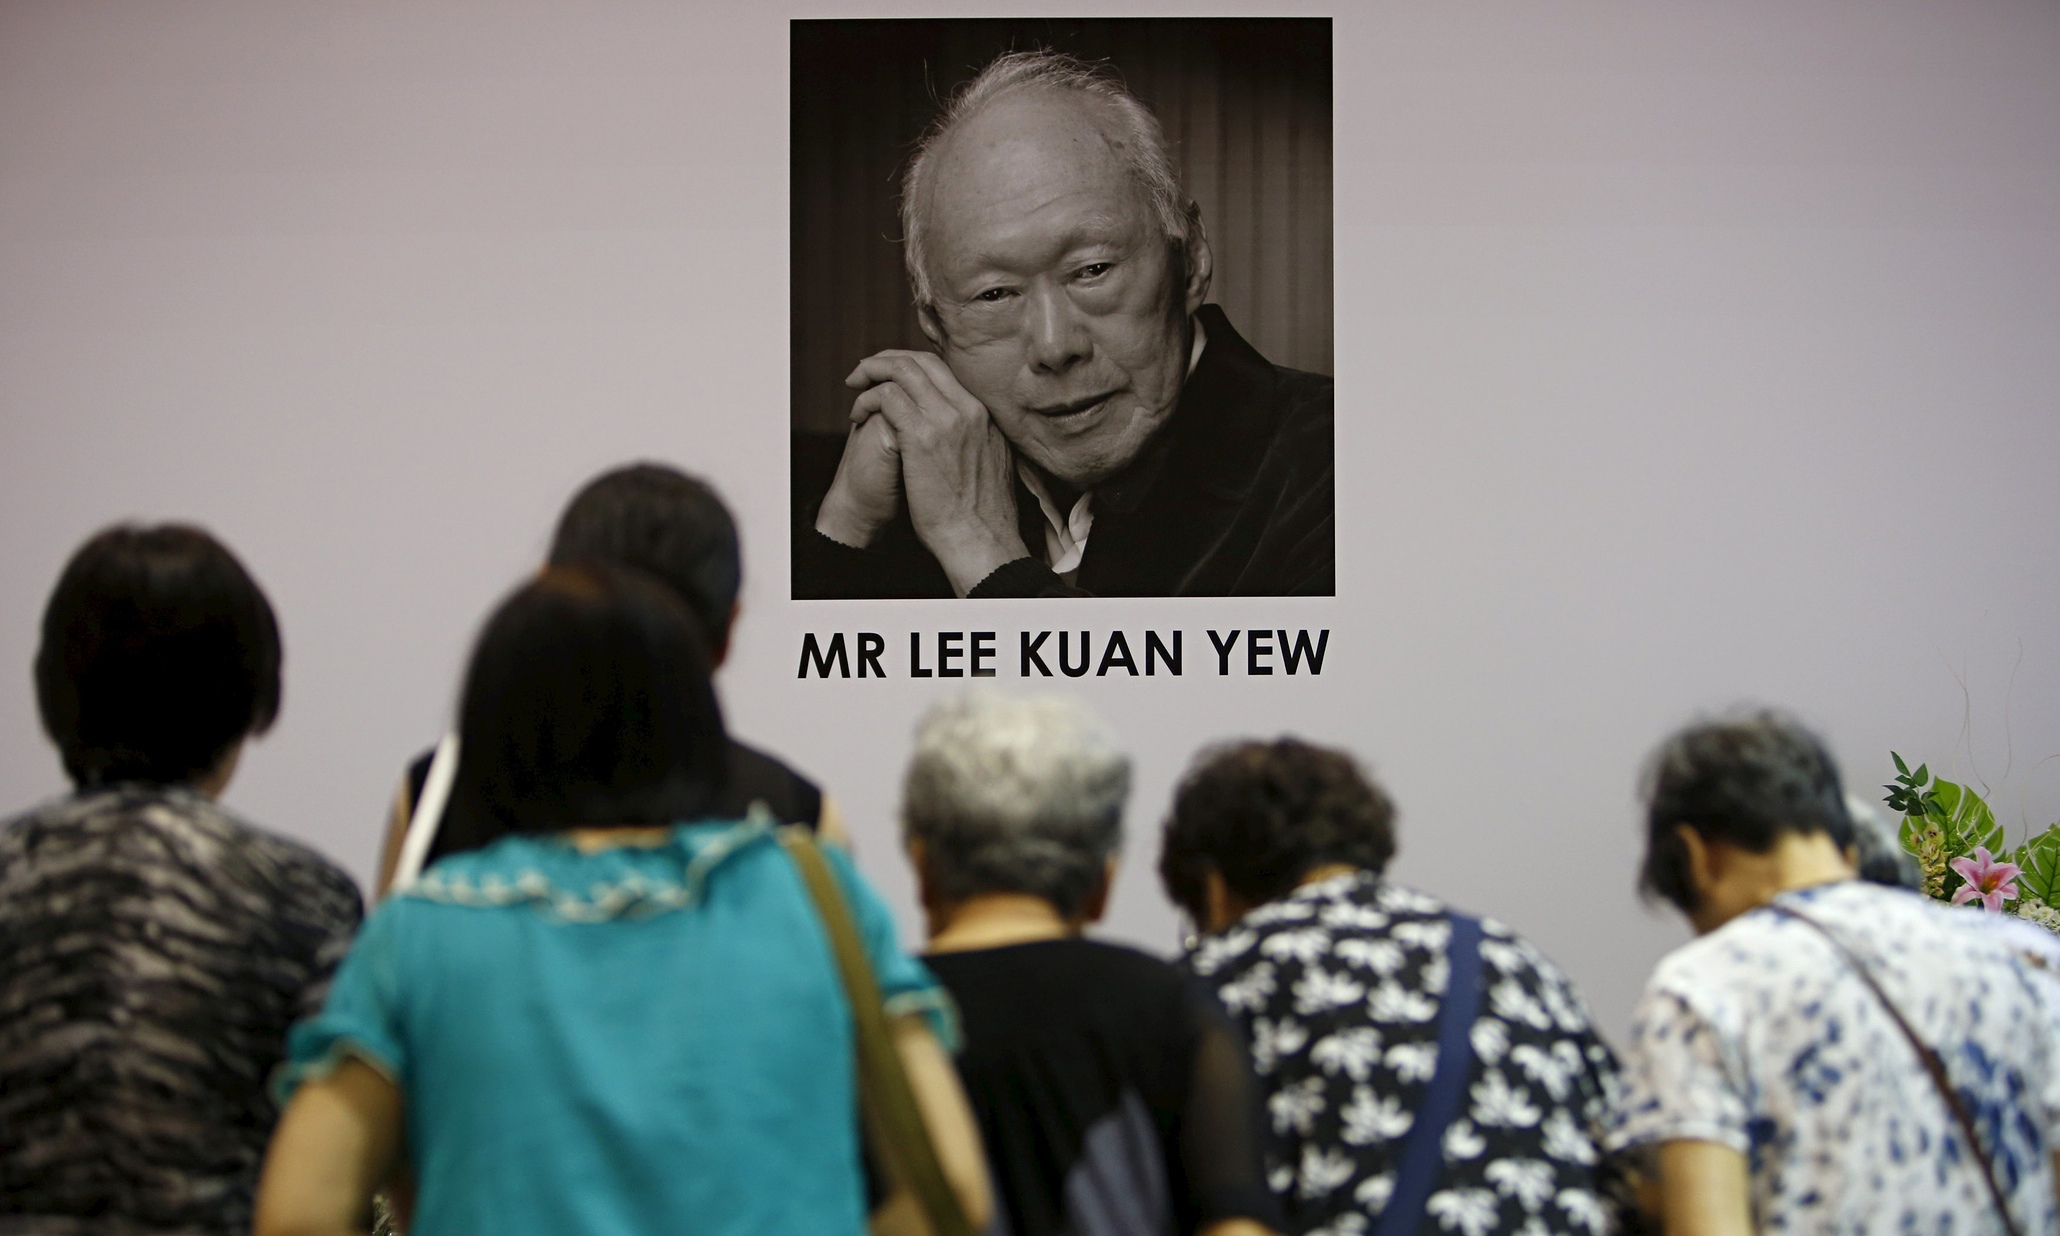 lee kuan yew essay 5 life lessons from lee kuan yew by nina syahira dr lee wei ling's essays for the sunday times, we wouldn't know of the sentimental, softer side of him.